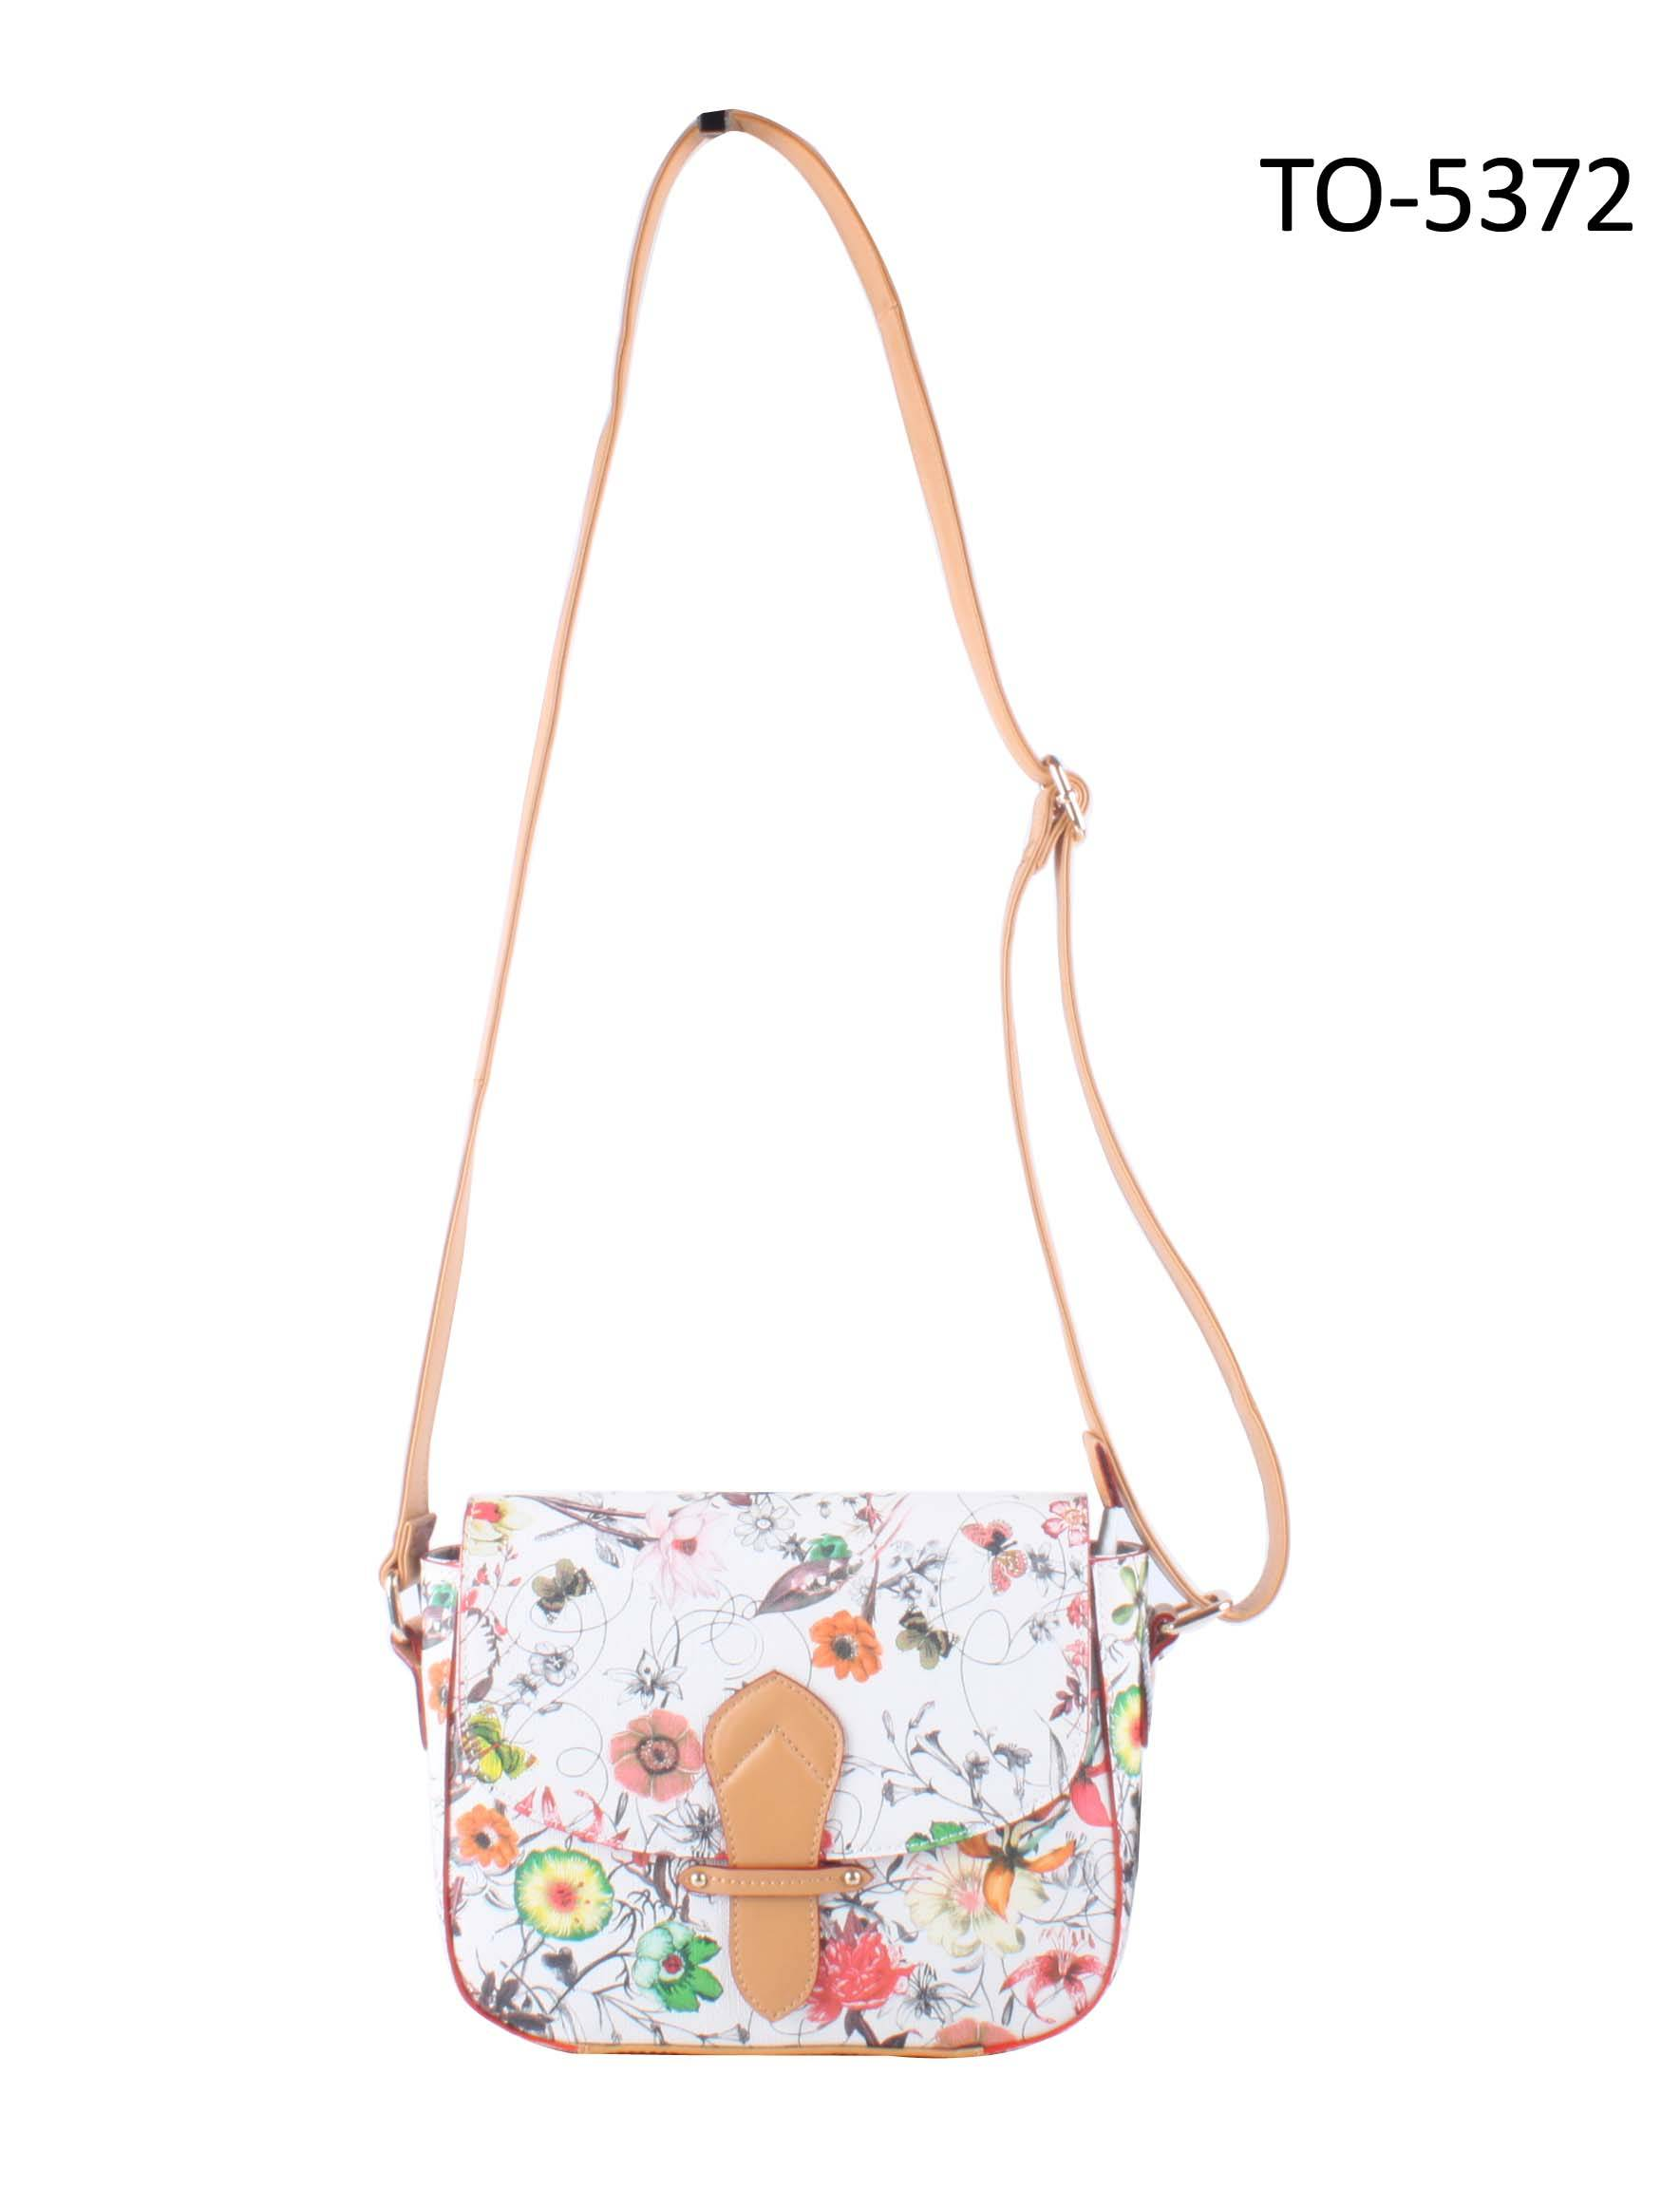 New Design Flower Floral Print Lady PU Cross-body shoulder bag